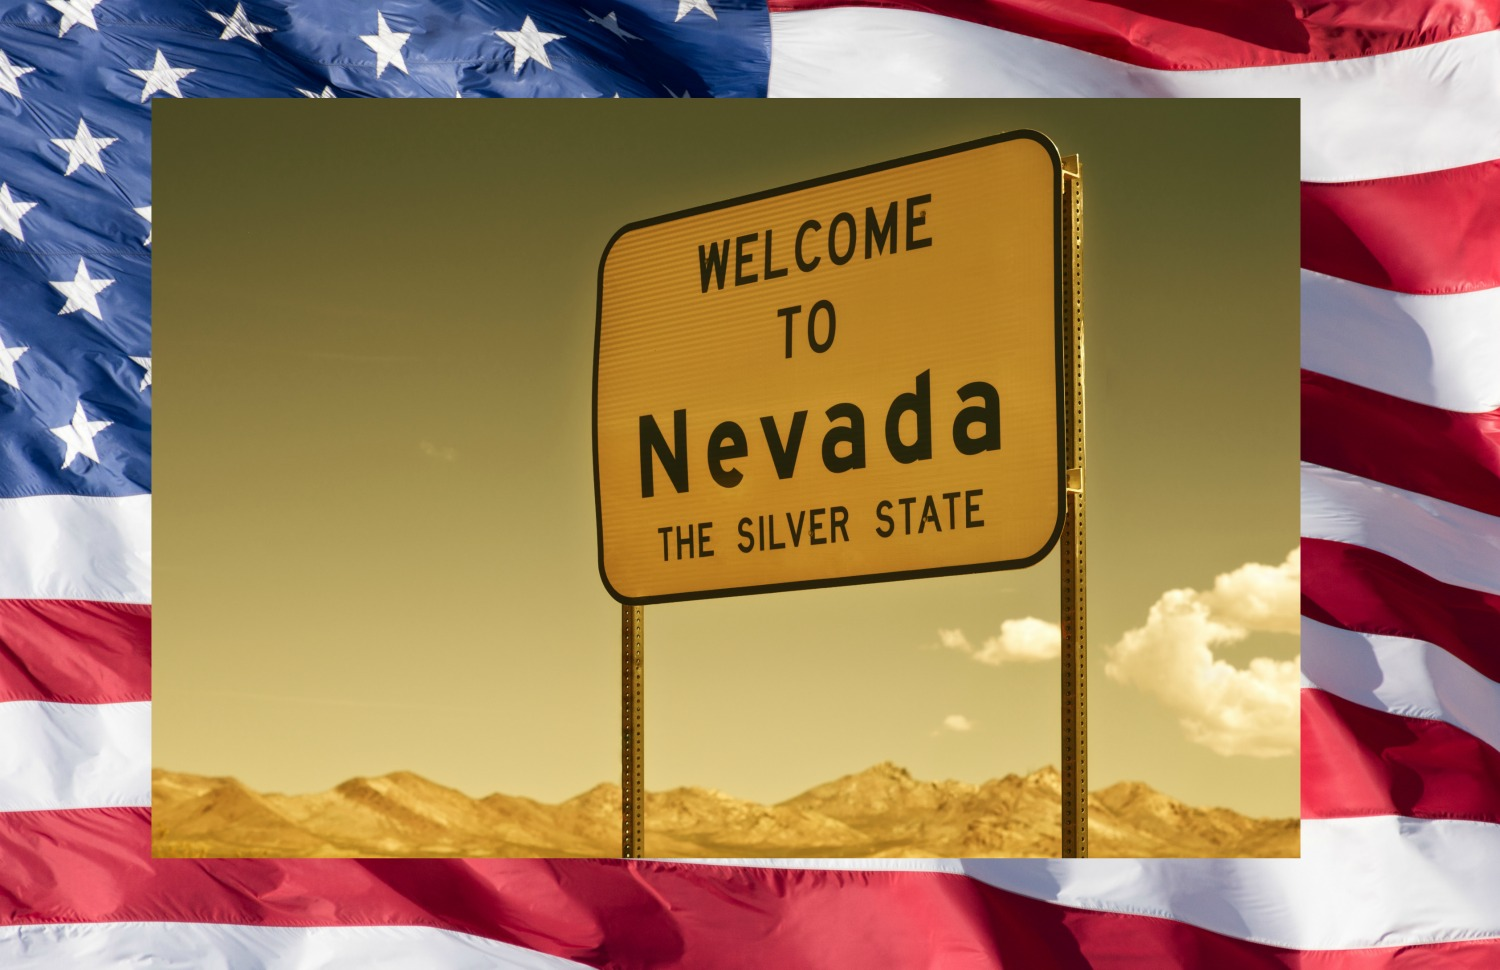 Nevada%20interesting%20facts